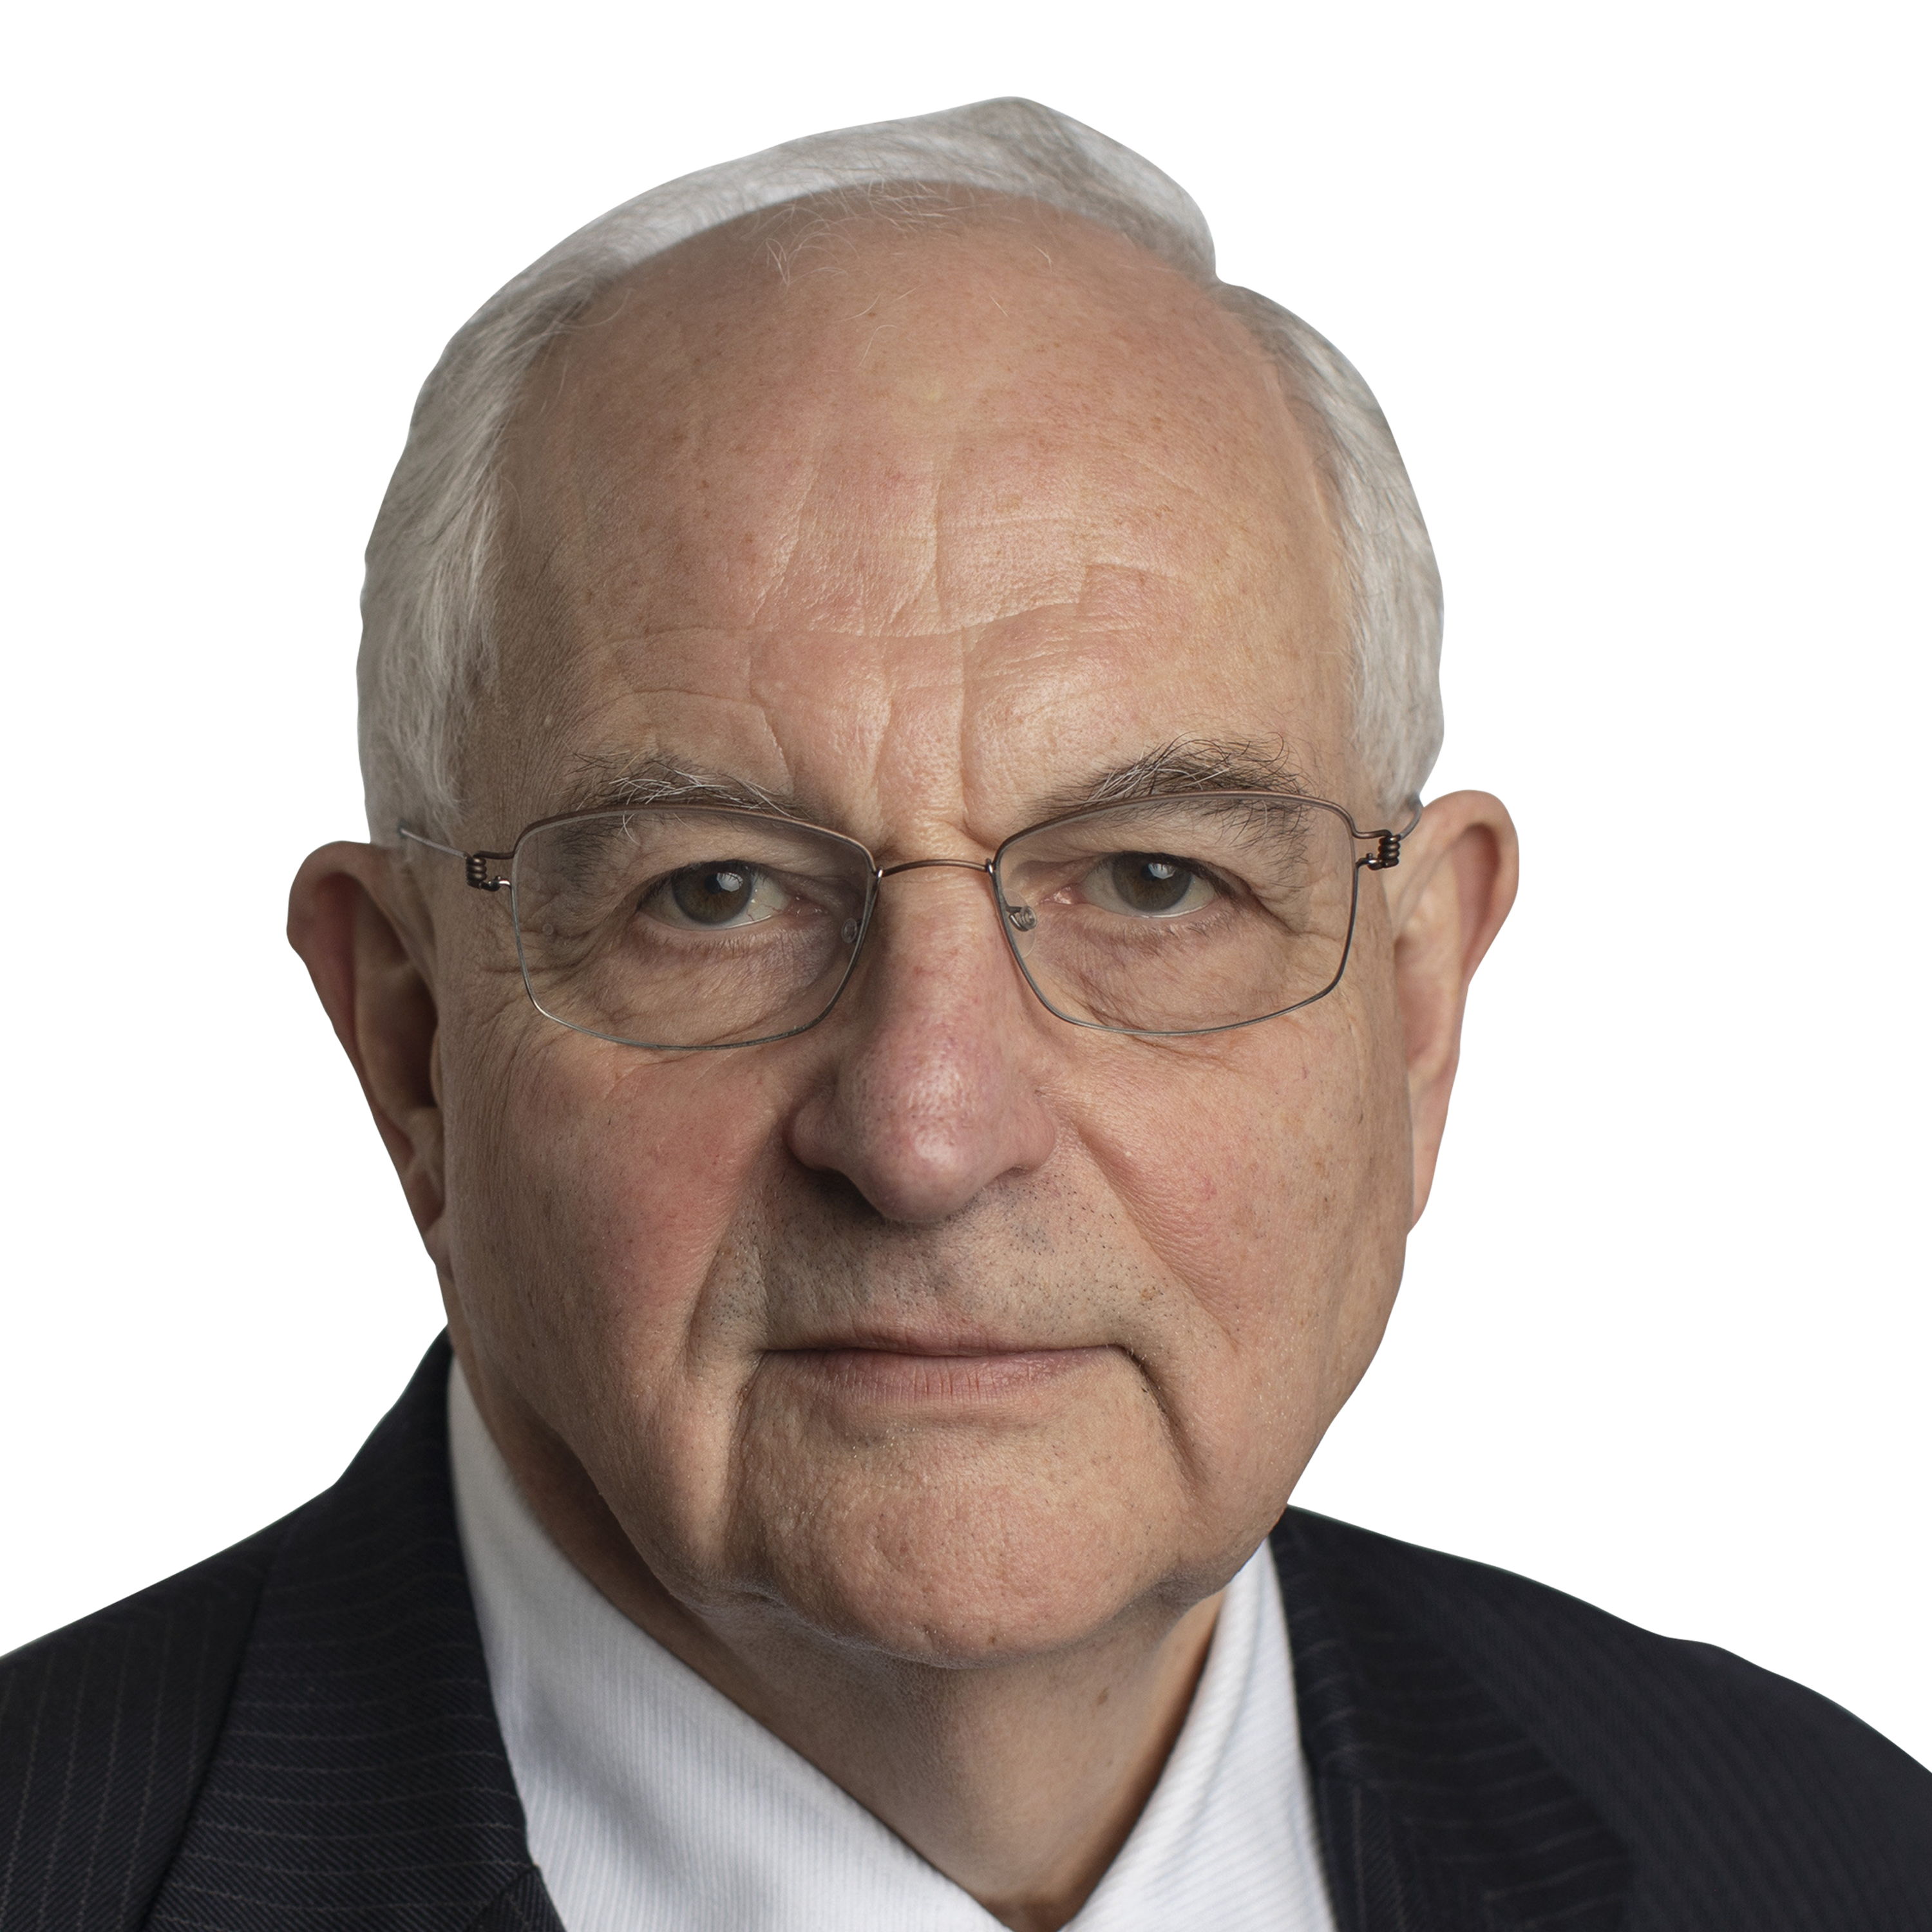 Image of Martin Wolf